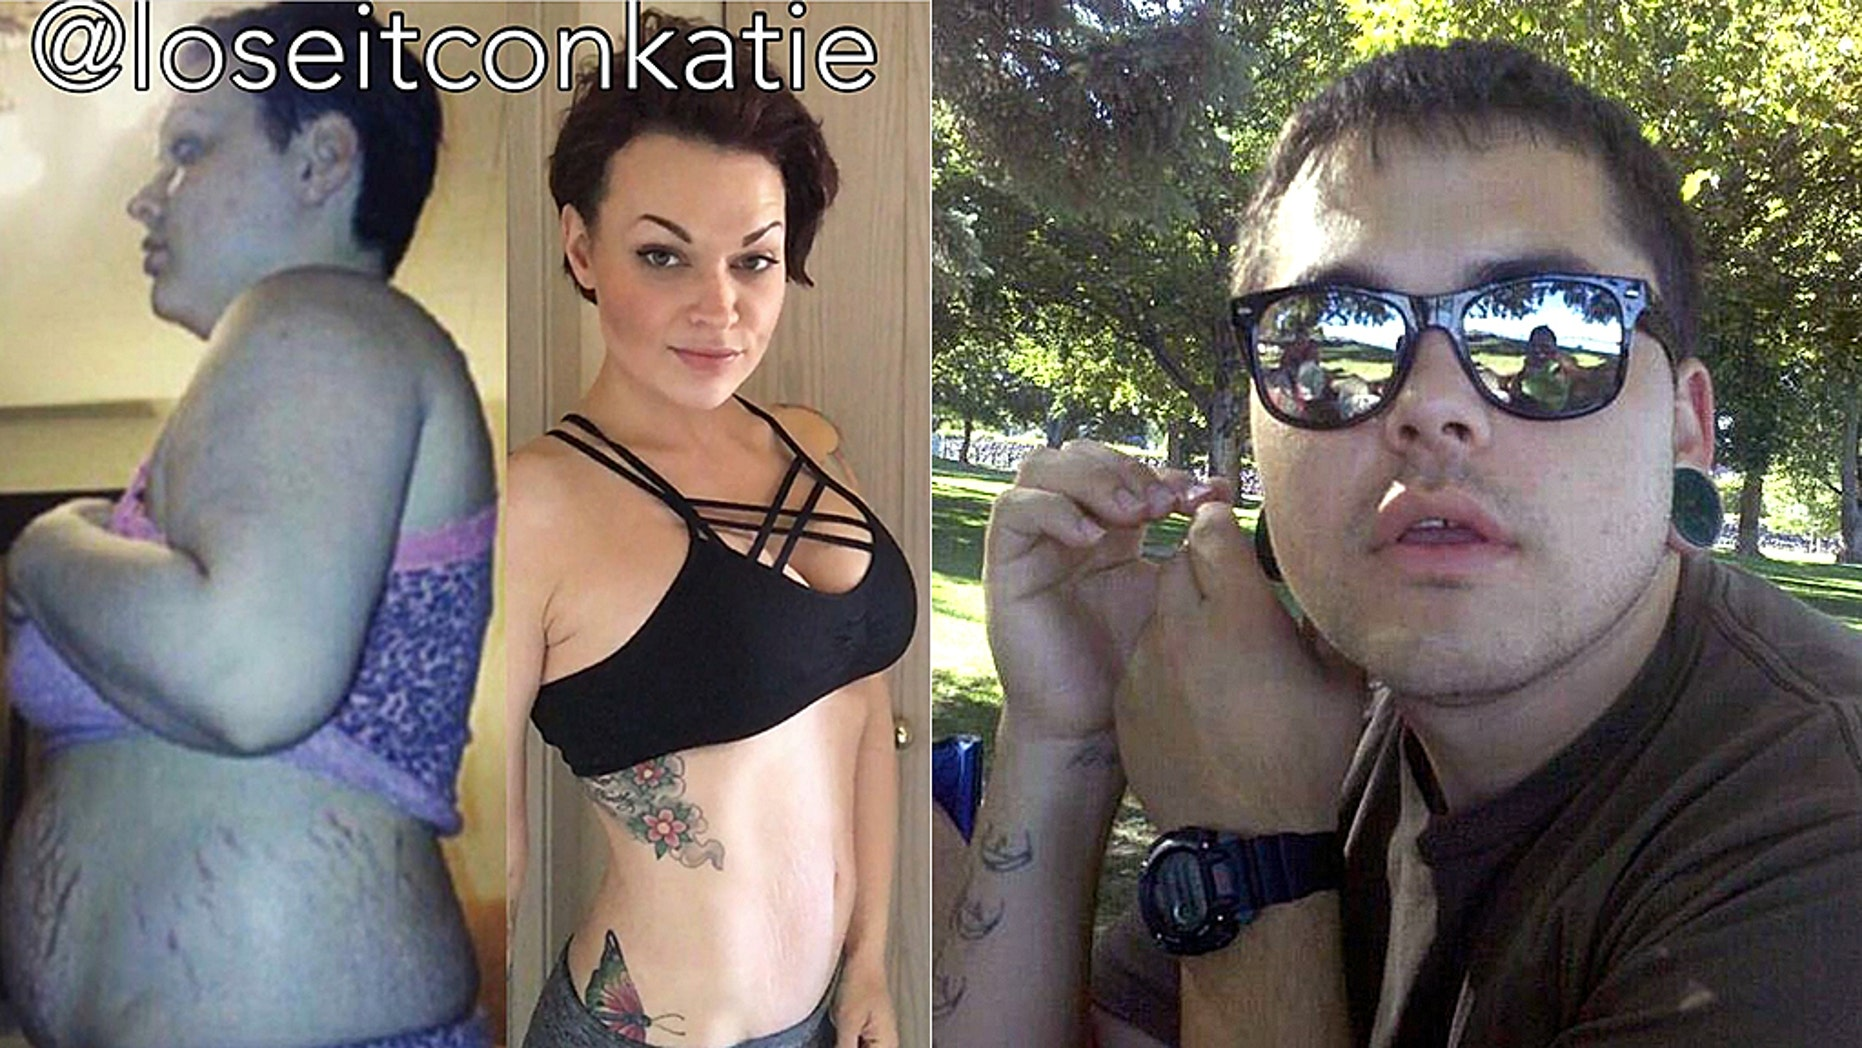 Katie Summers, left, who became a fitness coach and model after losing 98 pounds in a year, was arrested on suspicion of hitting and killing moped rider Leonel Birrueta.